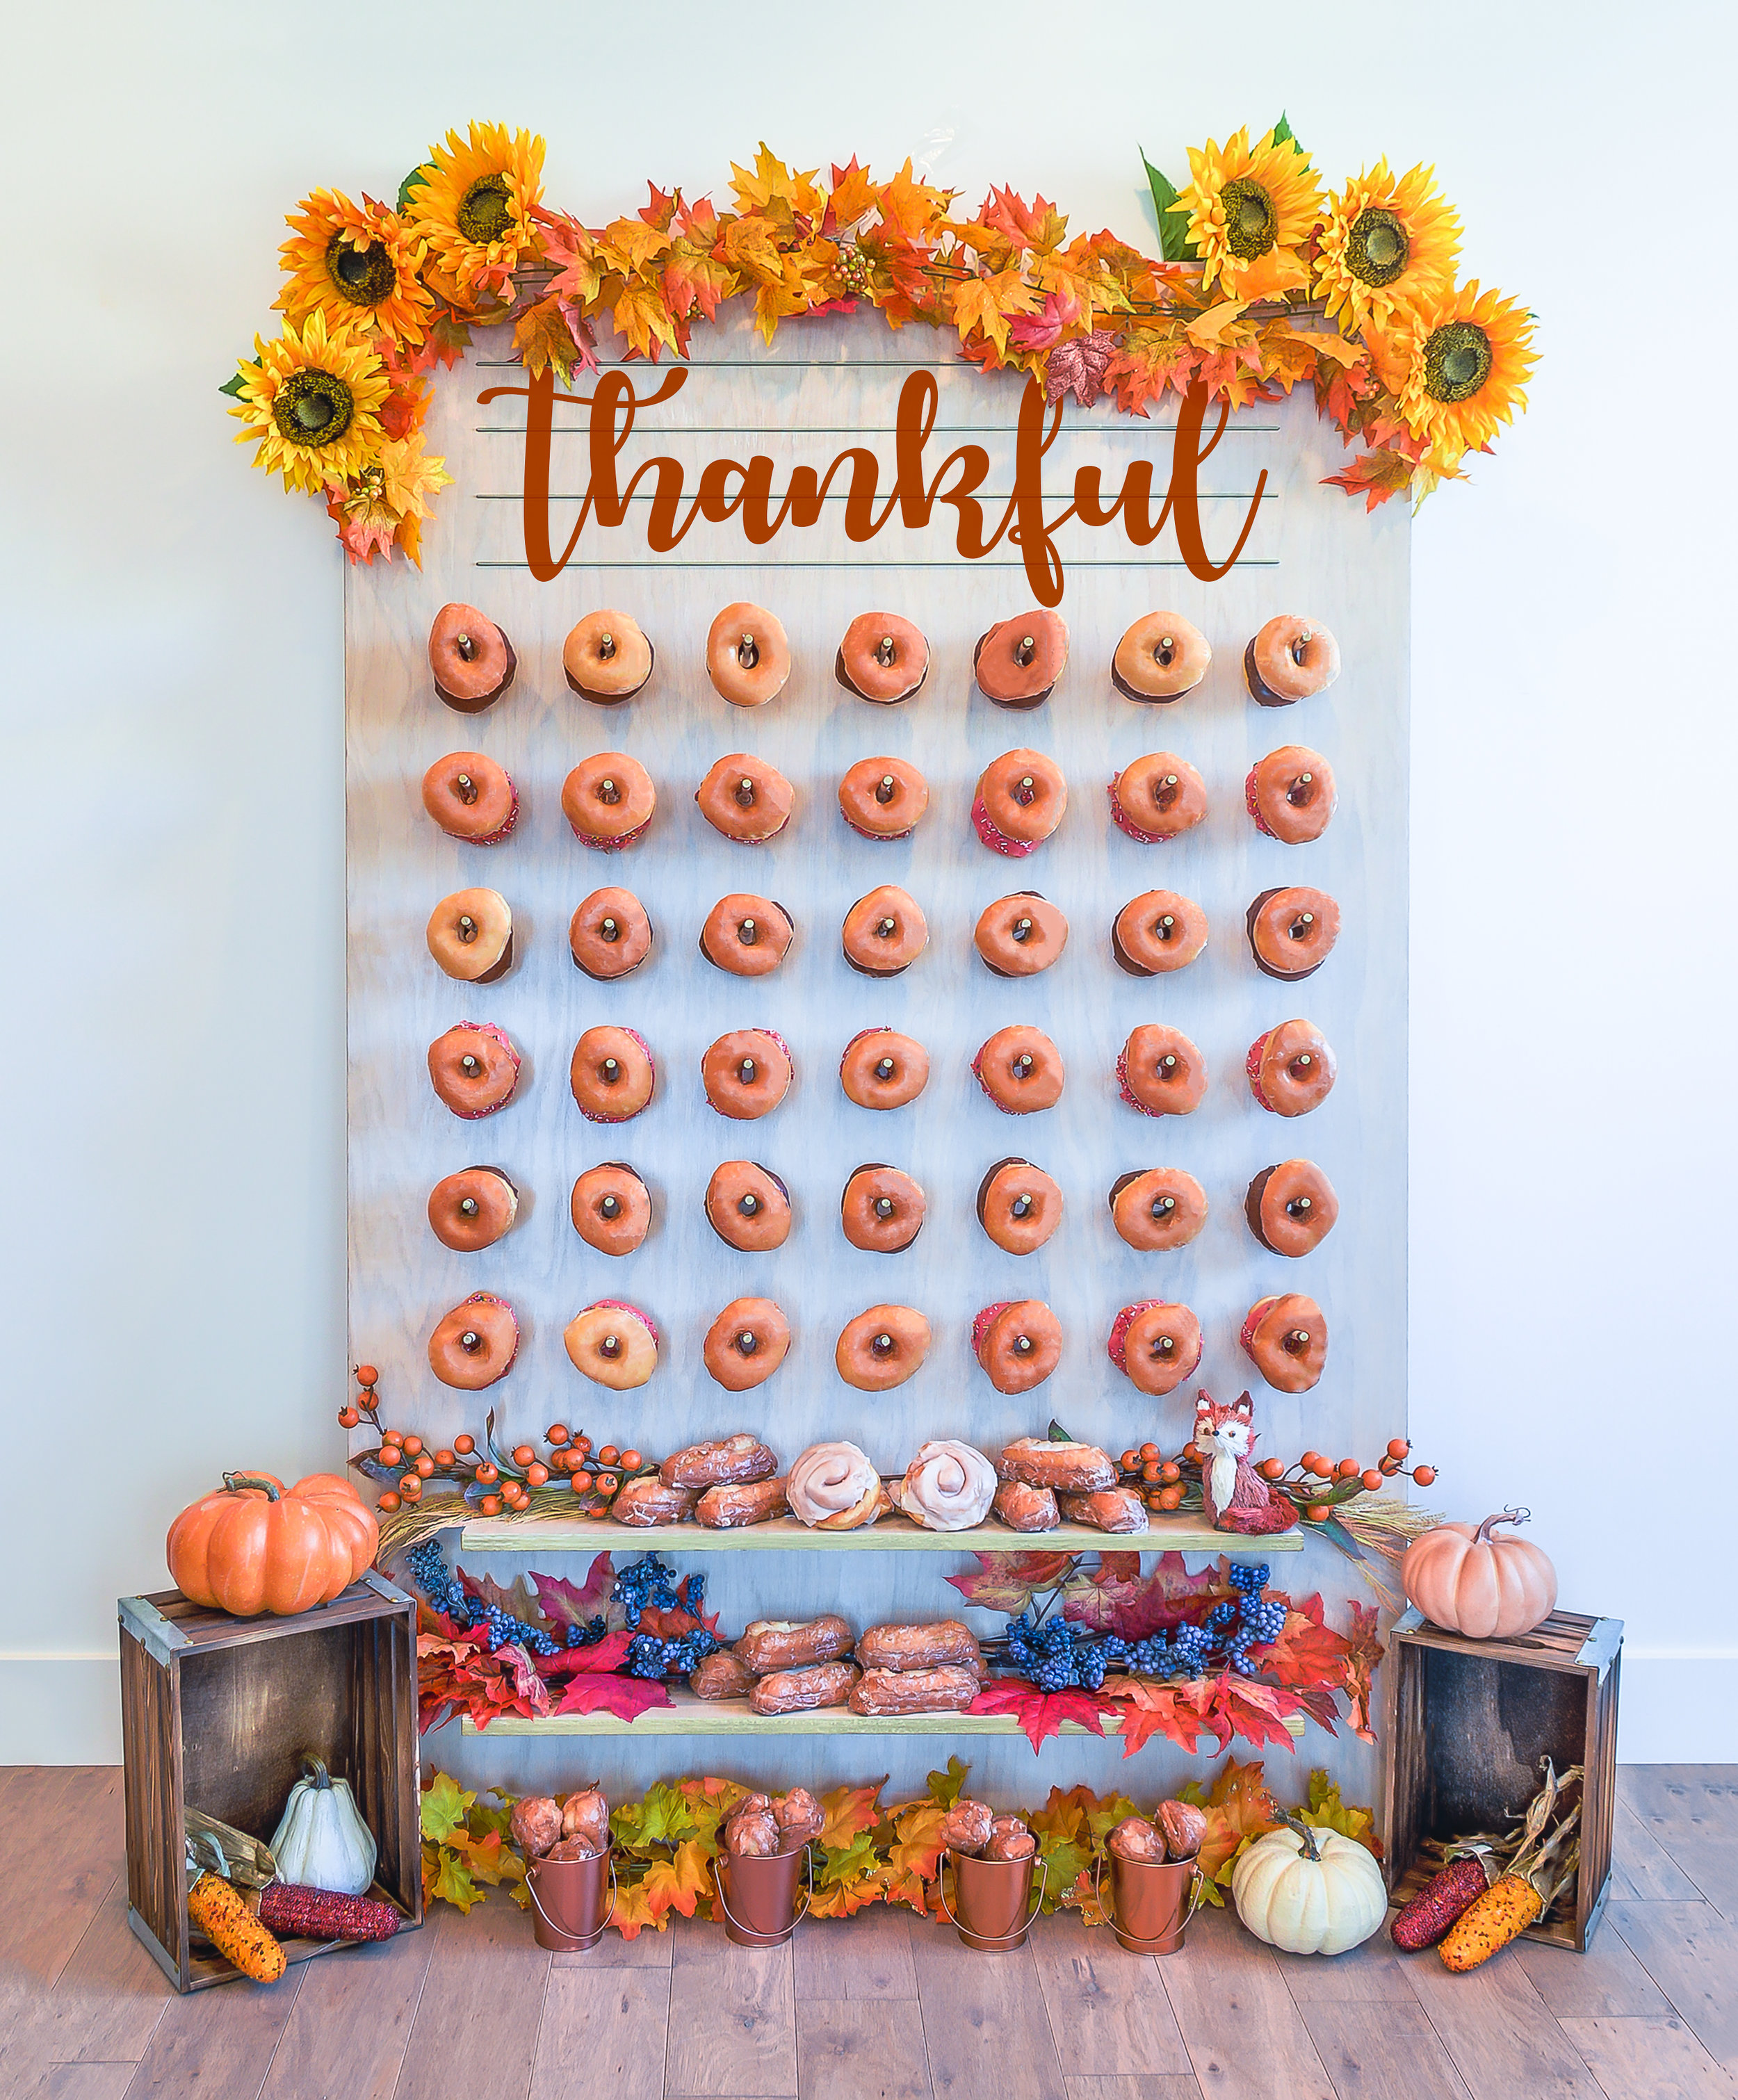 Thanksgiving Fall Donut Wall || Primo's Donuts Los Angeles